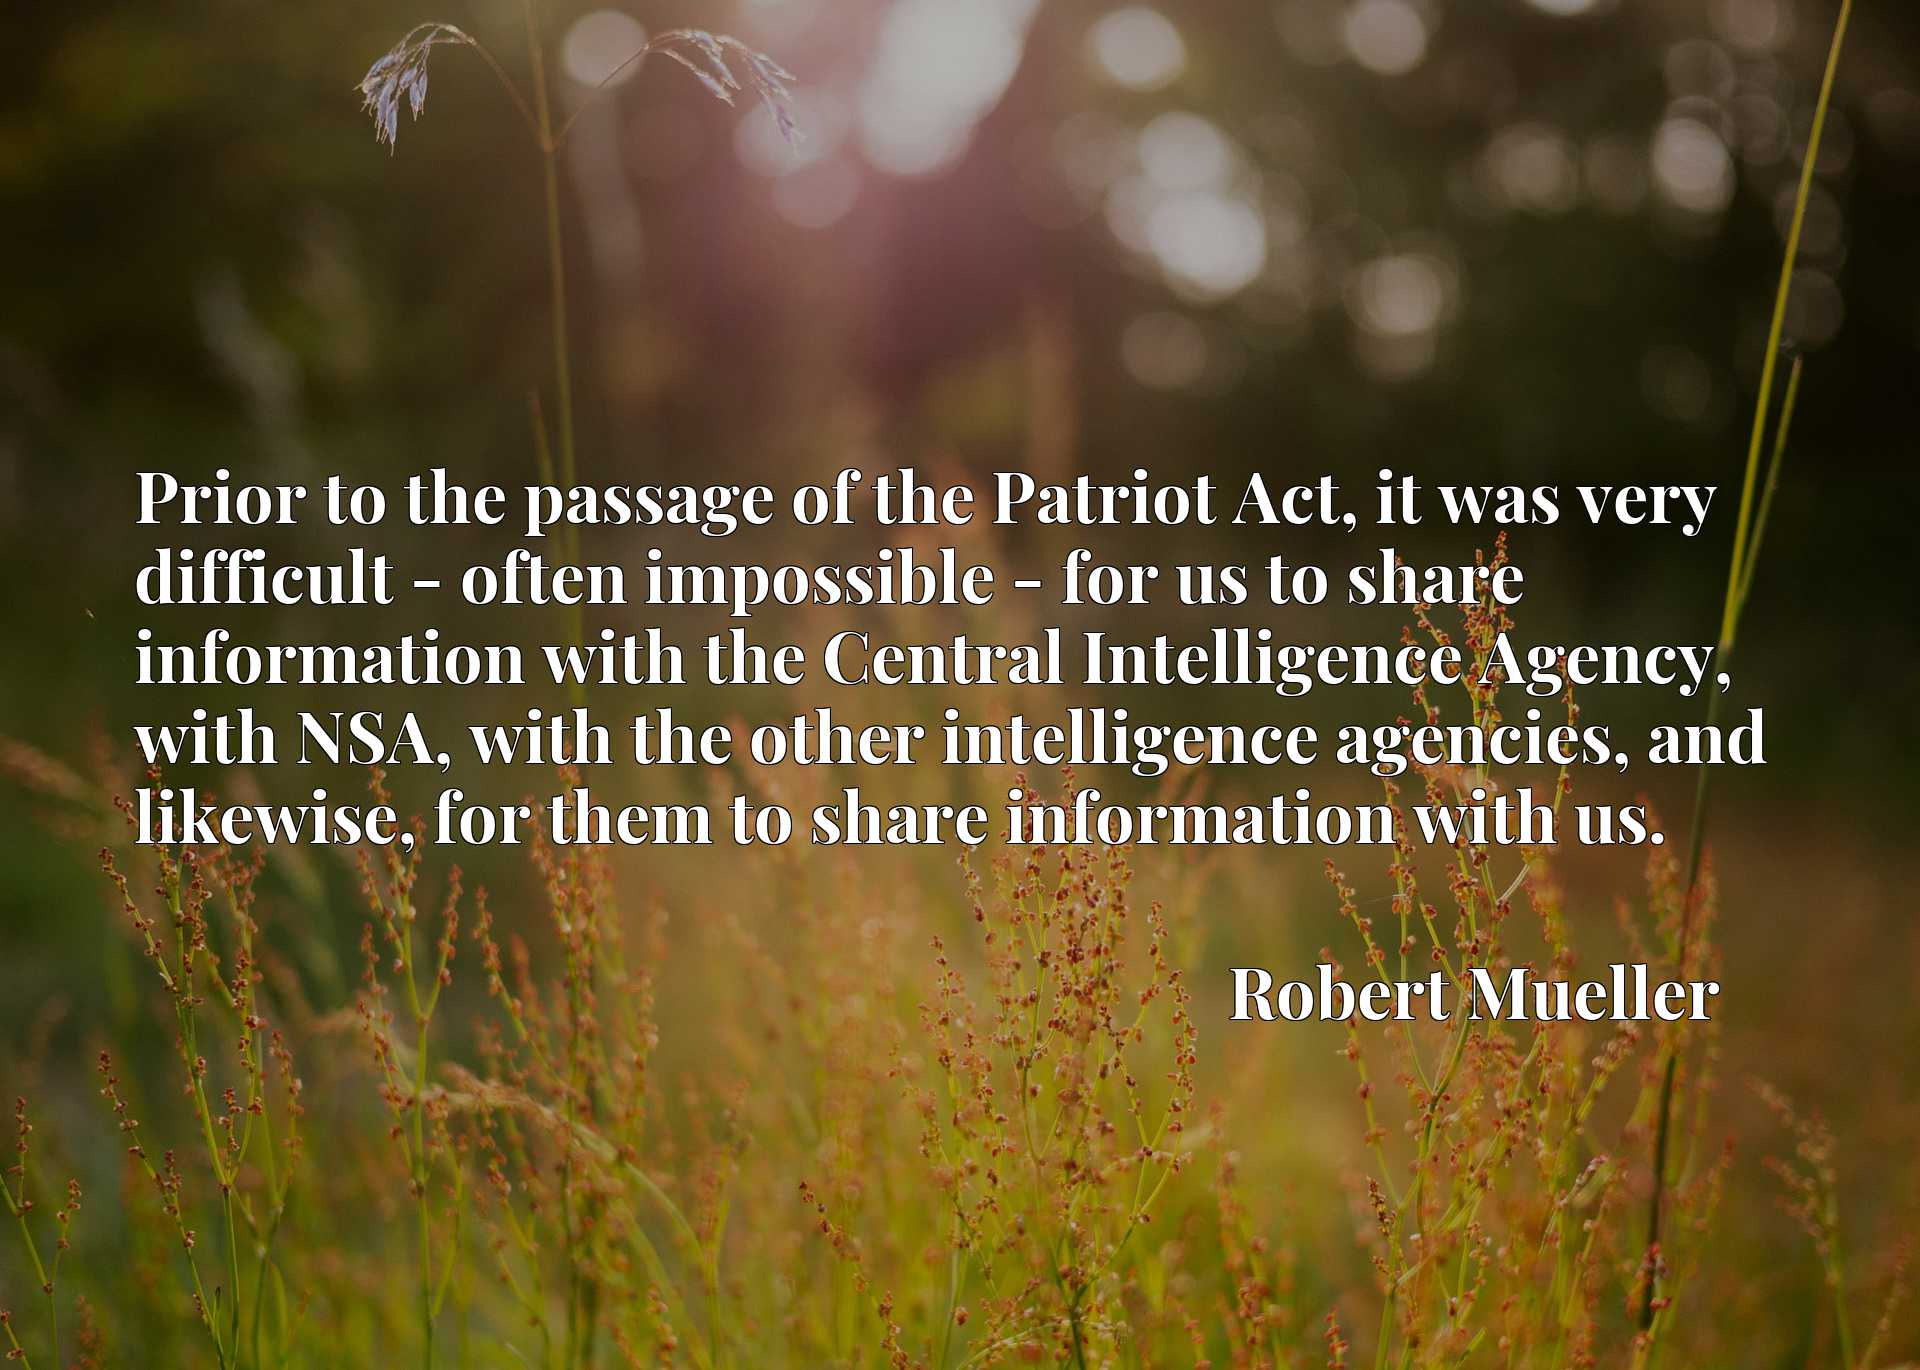 Prior to the passage of the Patriot Act, it was very difficult - often impossible - for us to share information with the Central Intelligence Agency, with NSA, with the other intelligence agencies, and likewise, for them to share information with us.